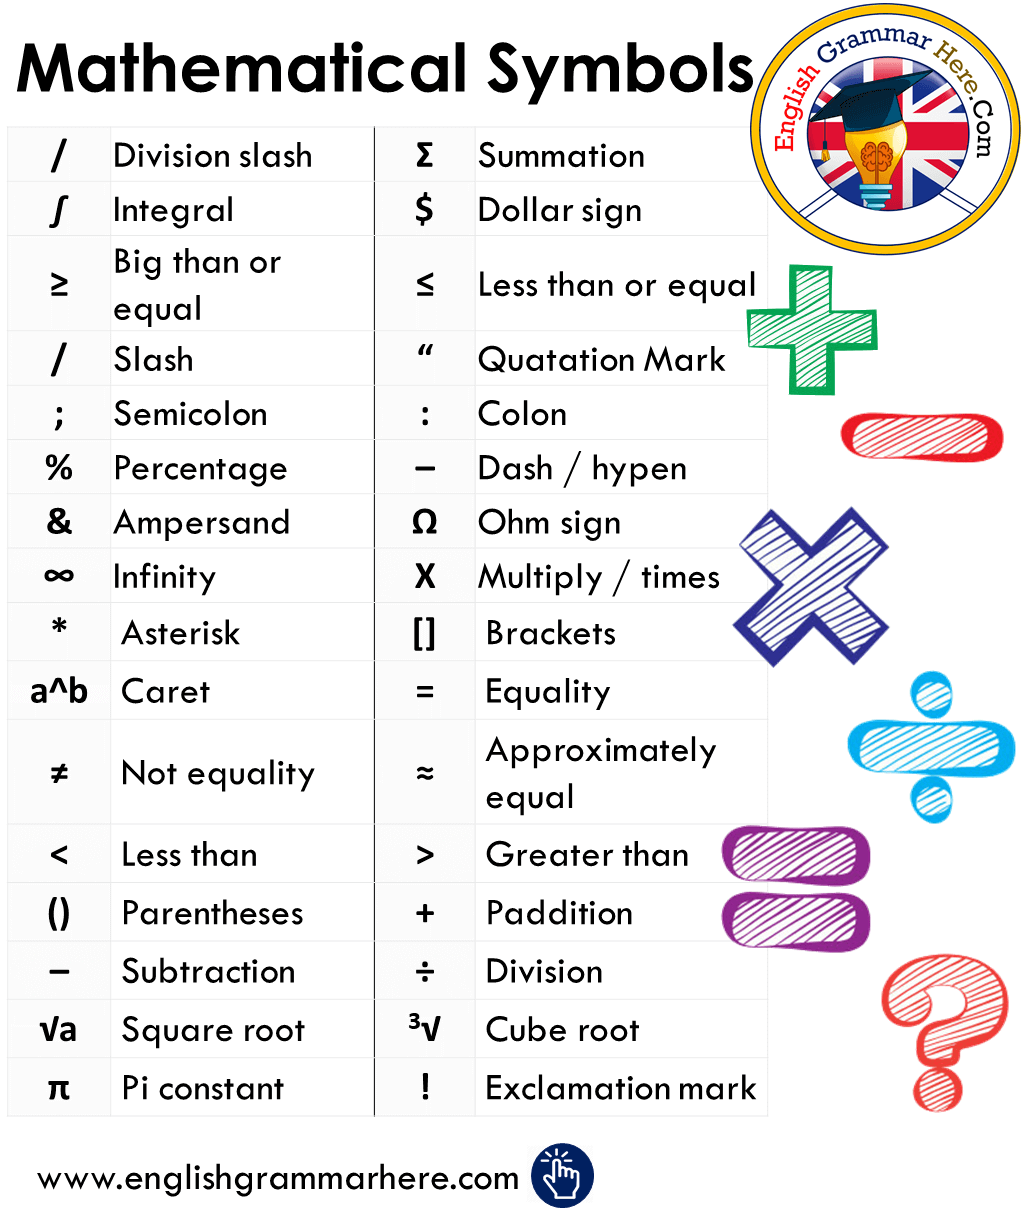 Mathematical Symbols List and Meanings